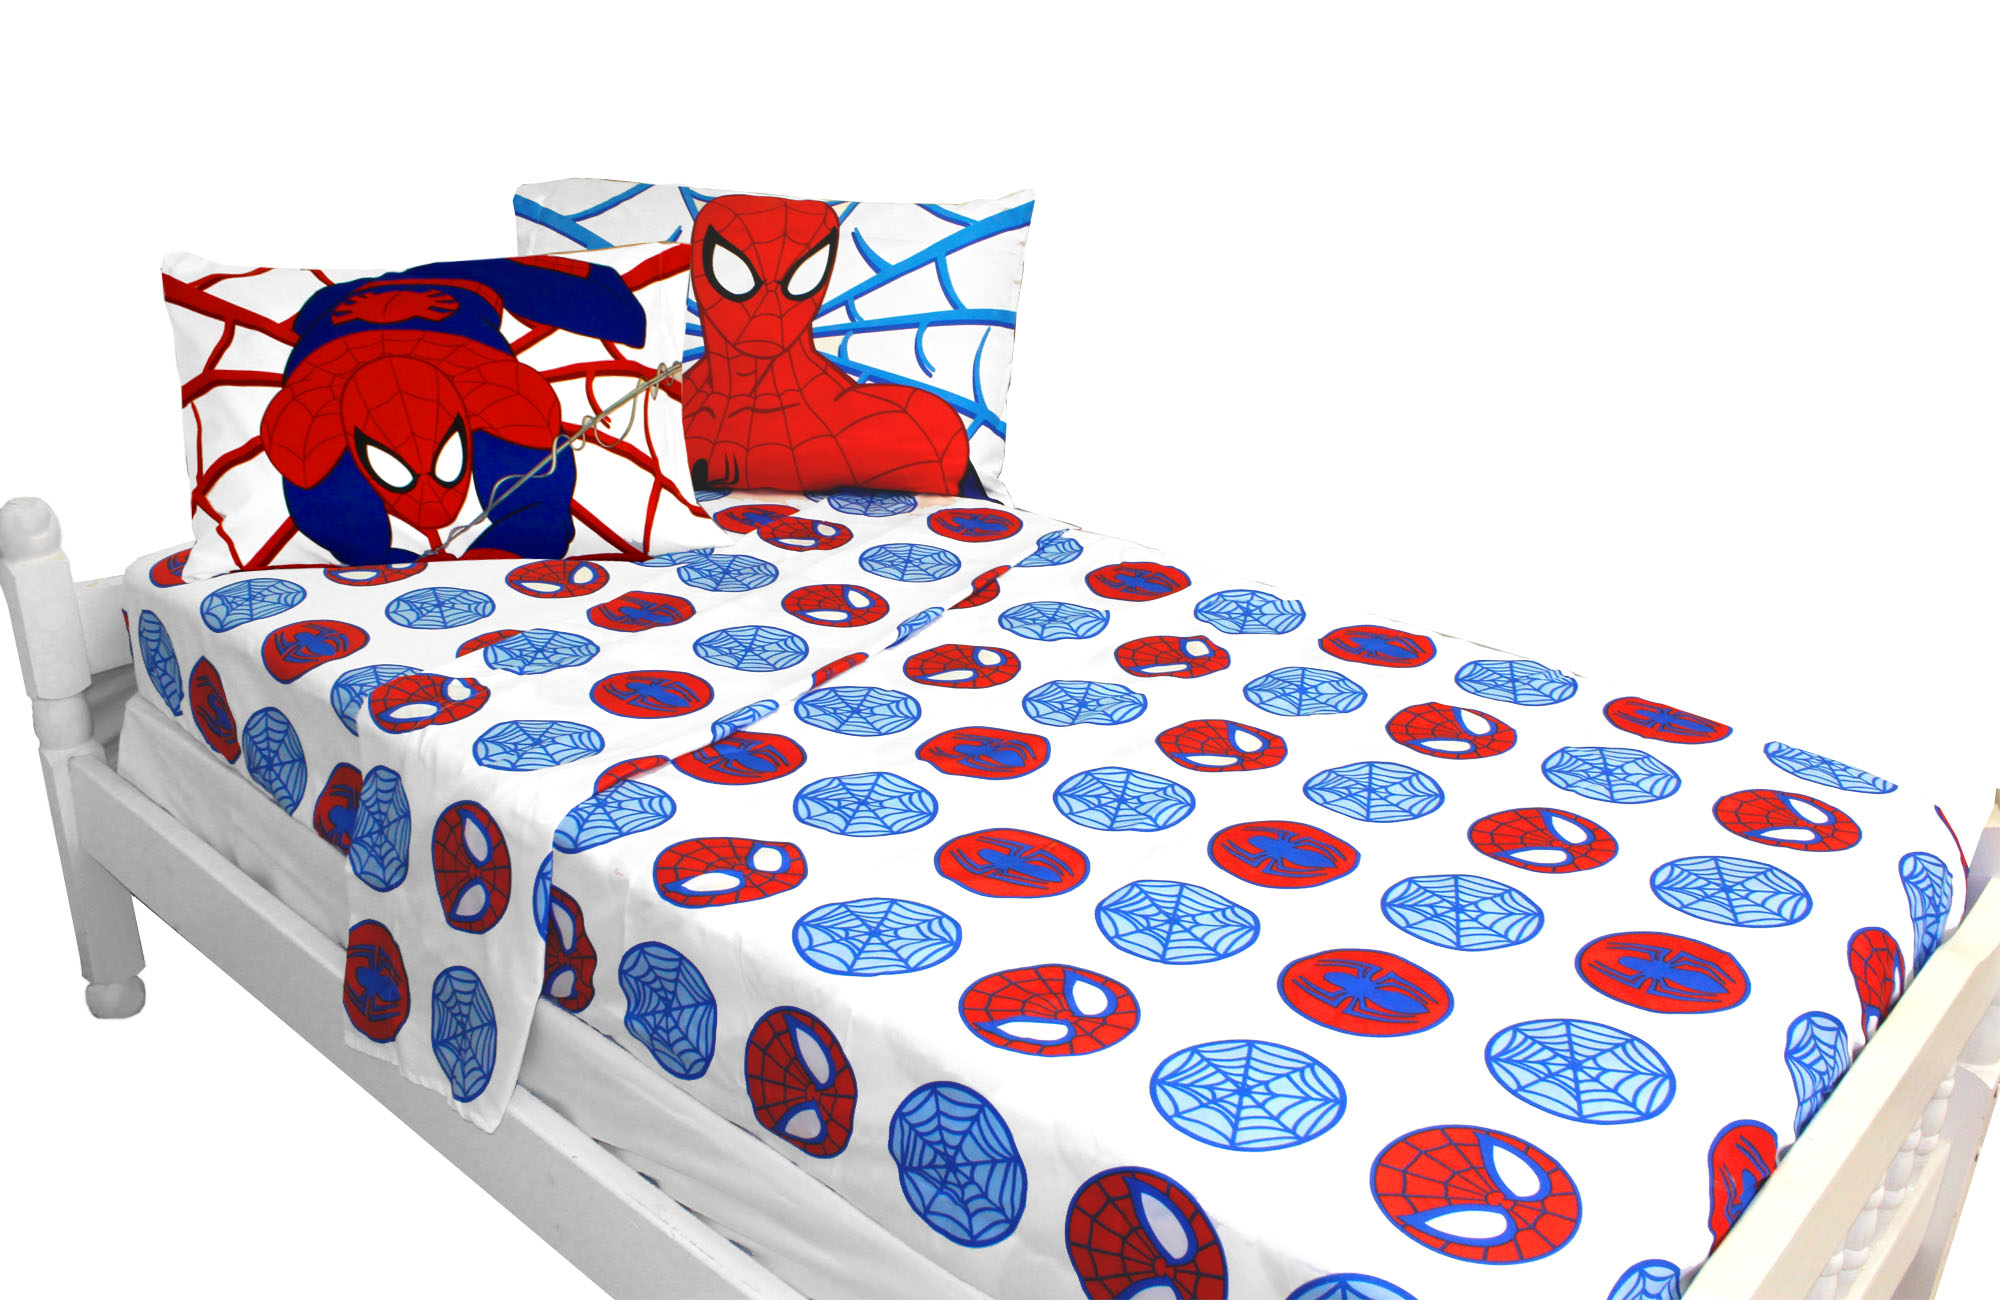 Marvel Comics Spiderman Bed Sheet Set Bold Spider-Man Bedding Accessories Full Jf26362cd JF26362CD